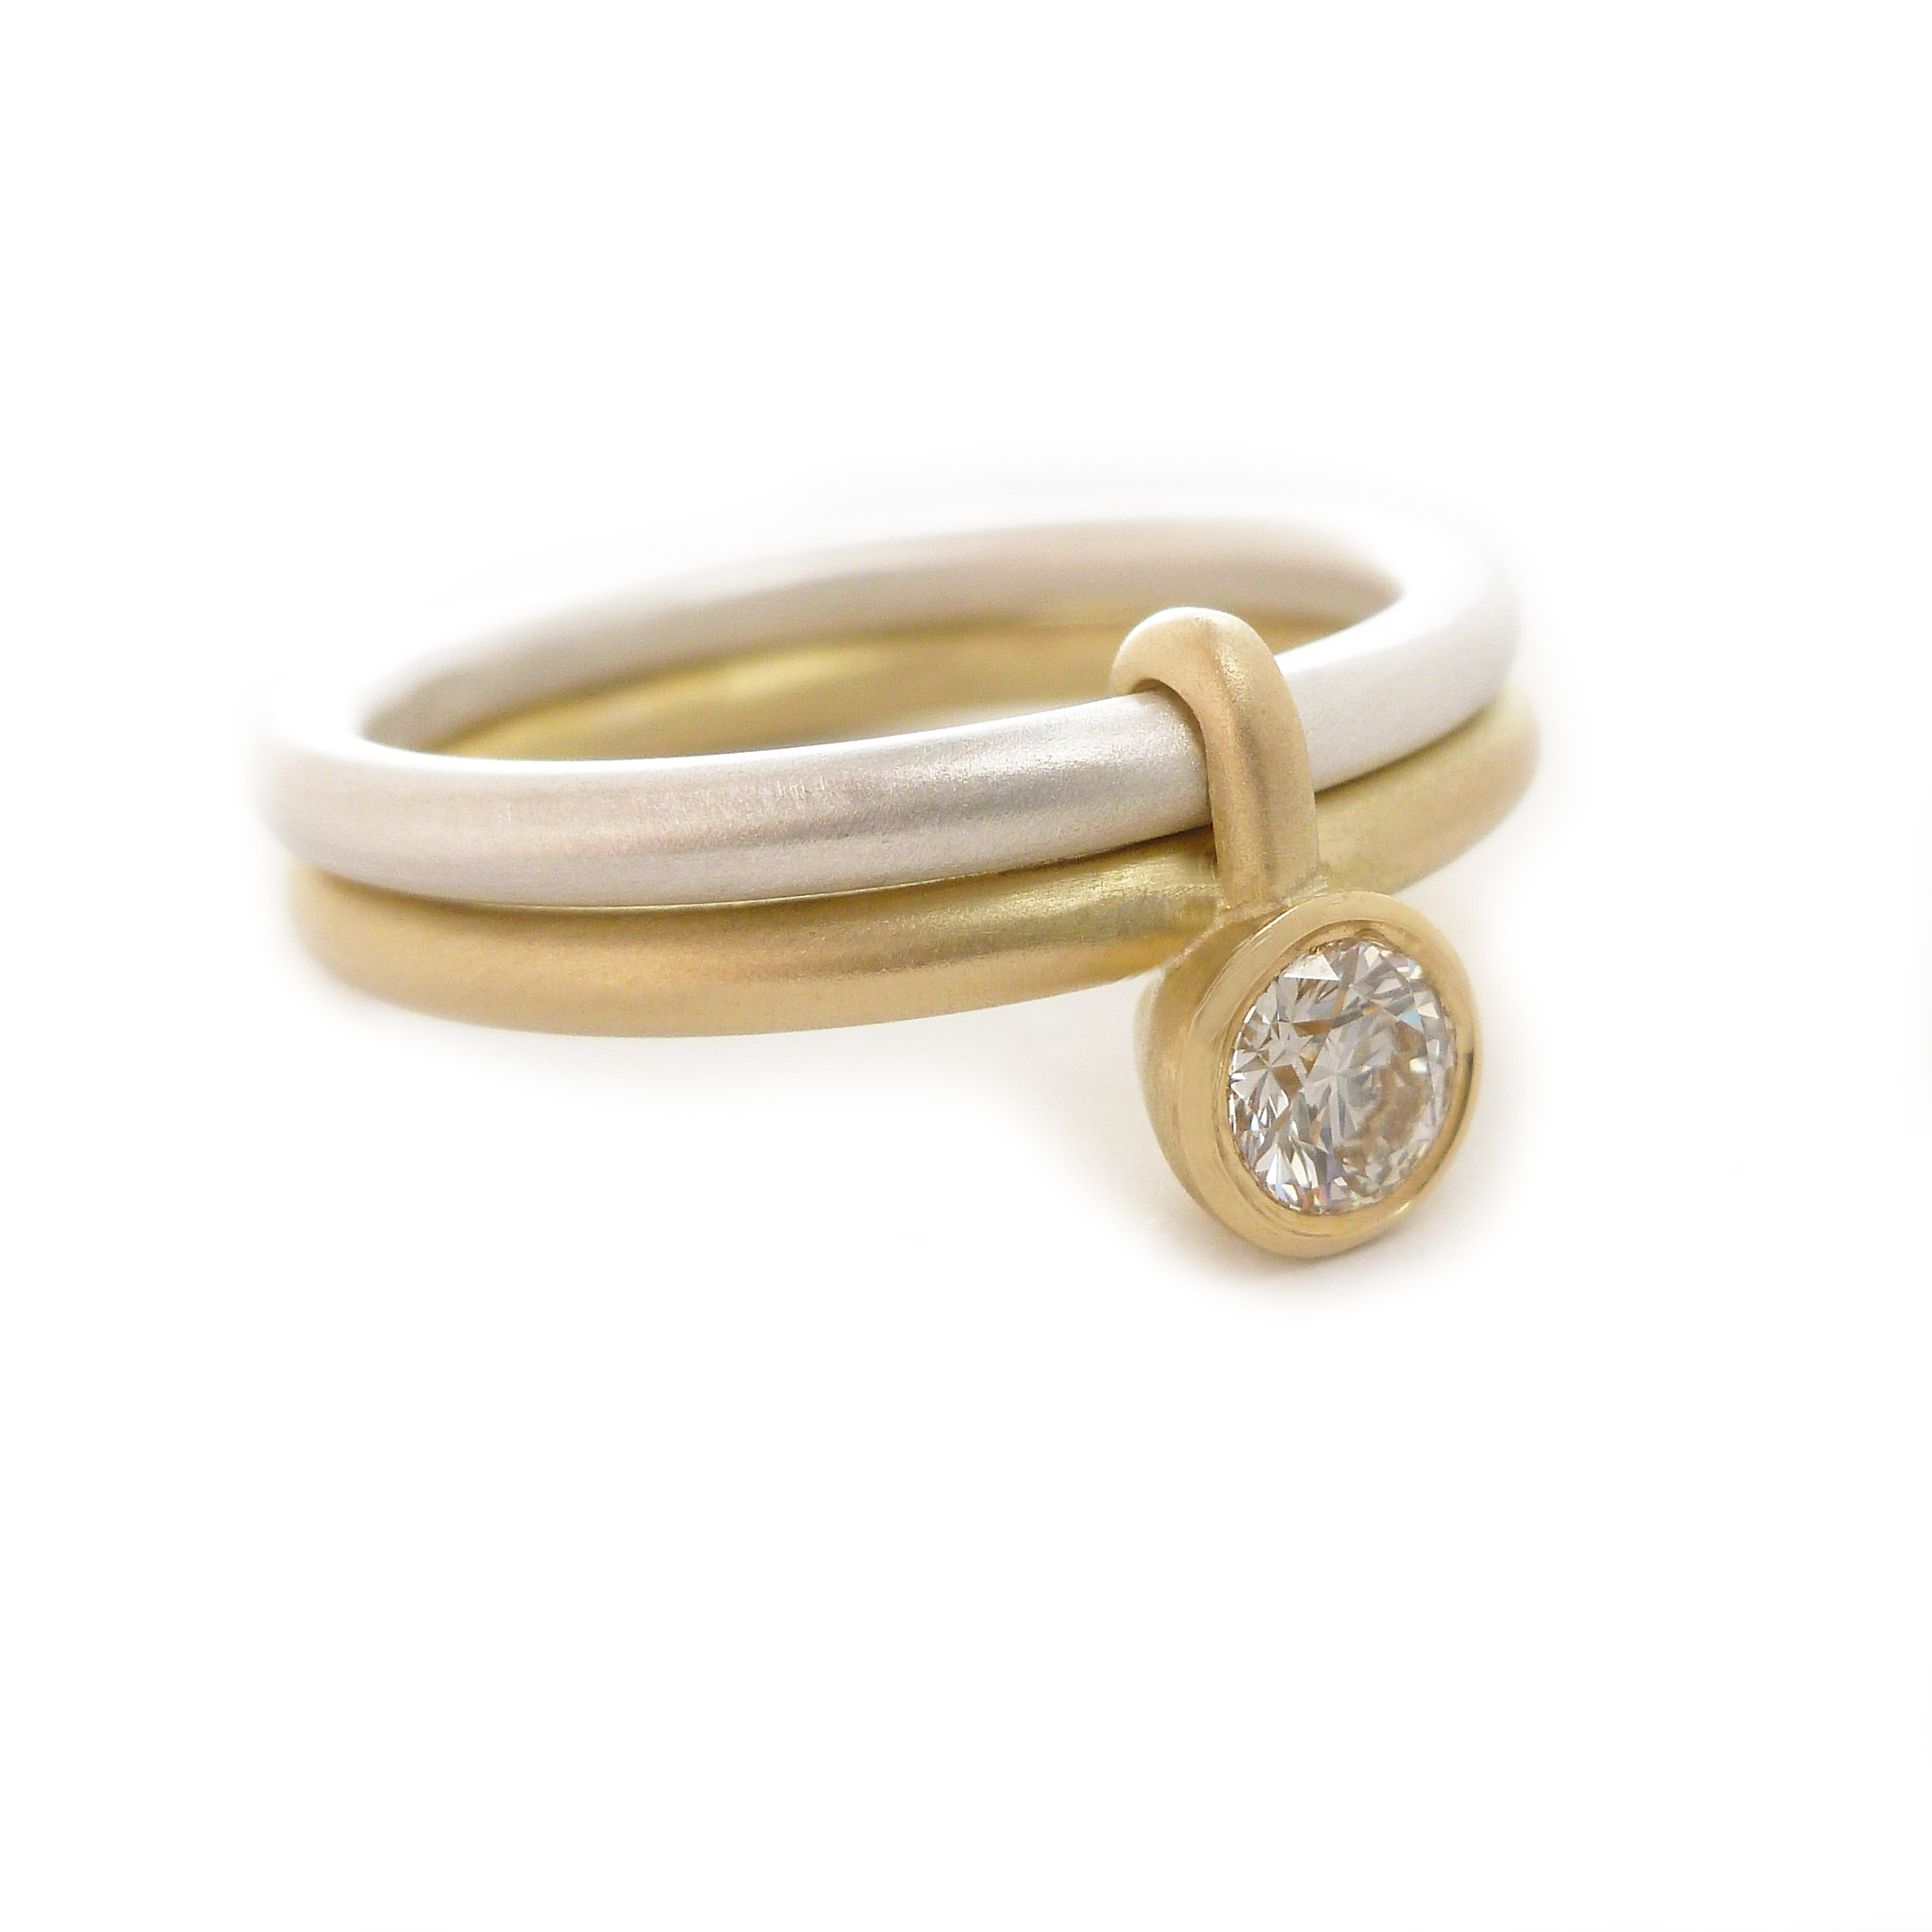 rings diamond by wedding close operandi loading ring sylva gold large equestrian moda cie